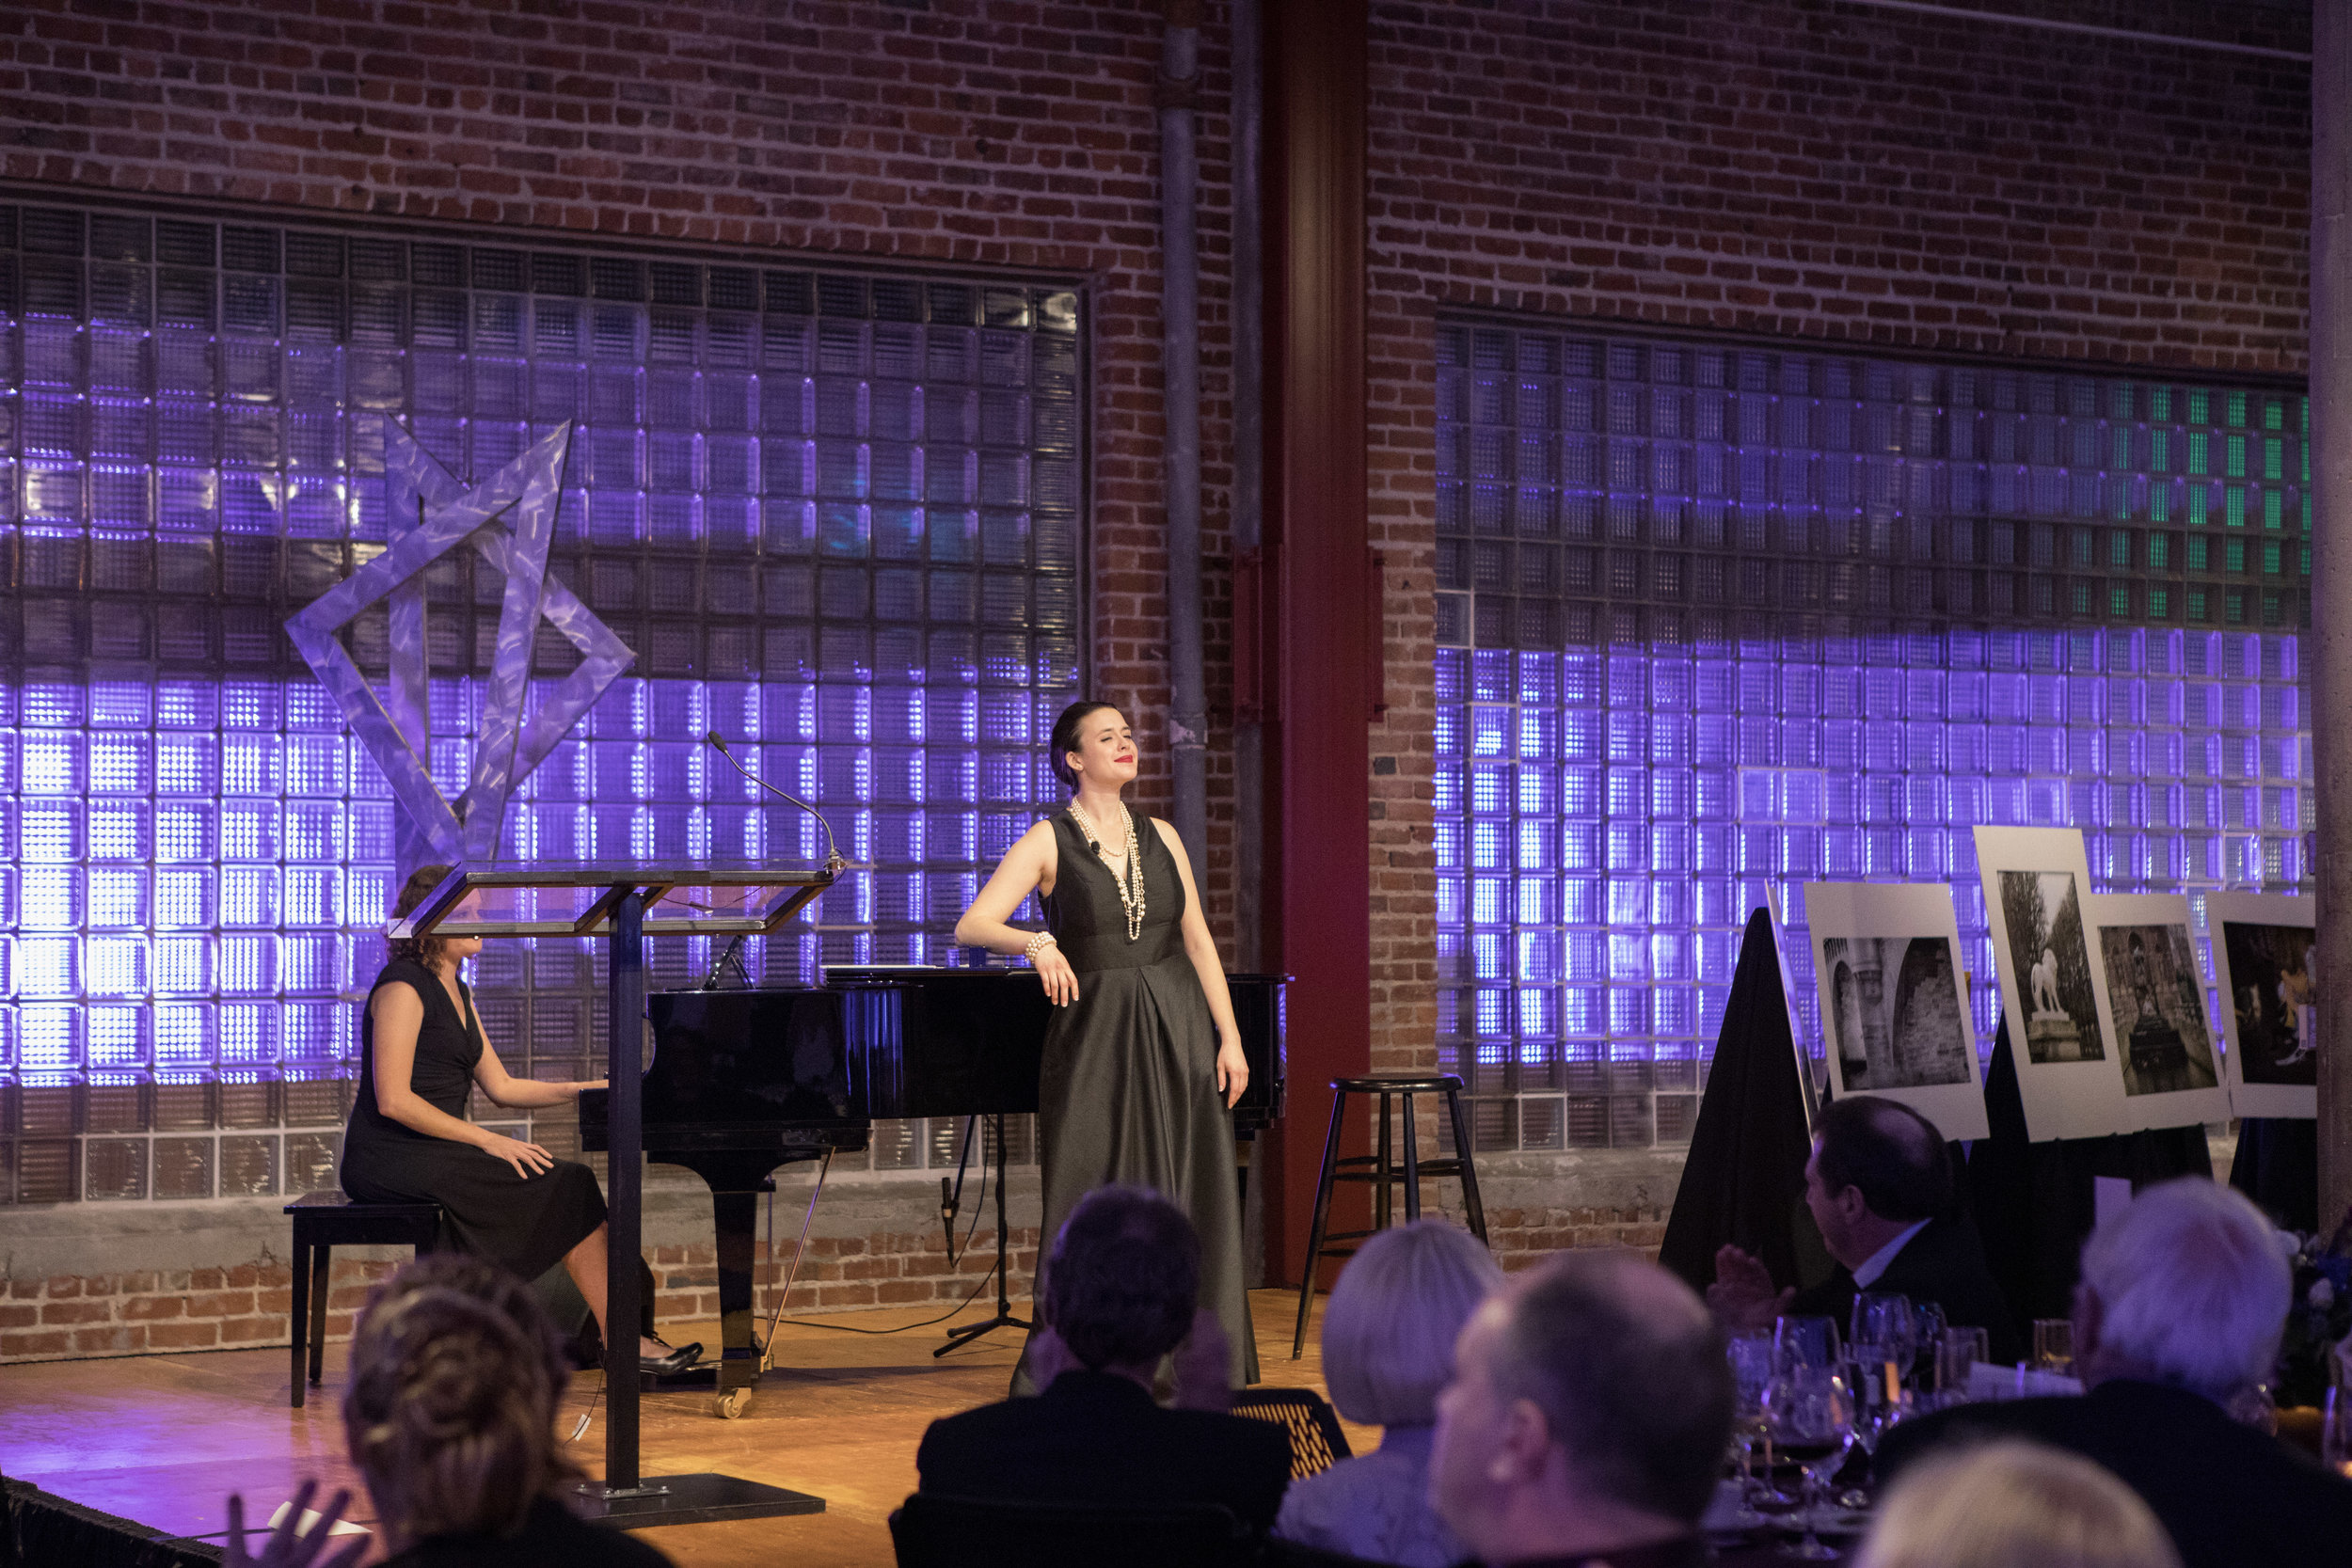 Accompanied on piano by Jennifer Novak-Haar, award-winning soprano Kate Johnson regaled the audience with numerous French musical selections.